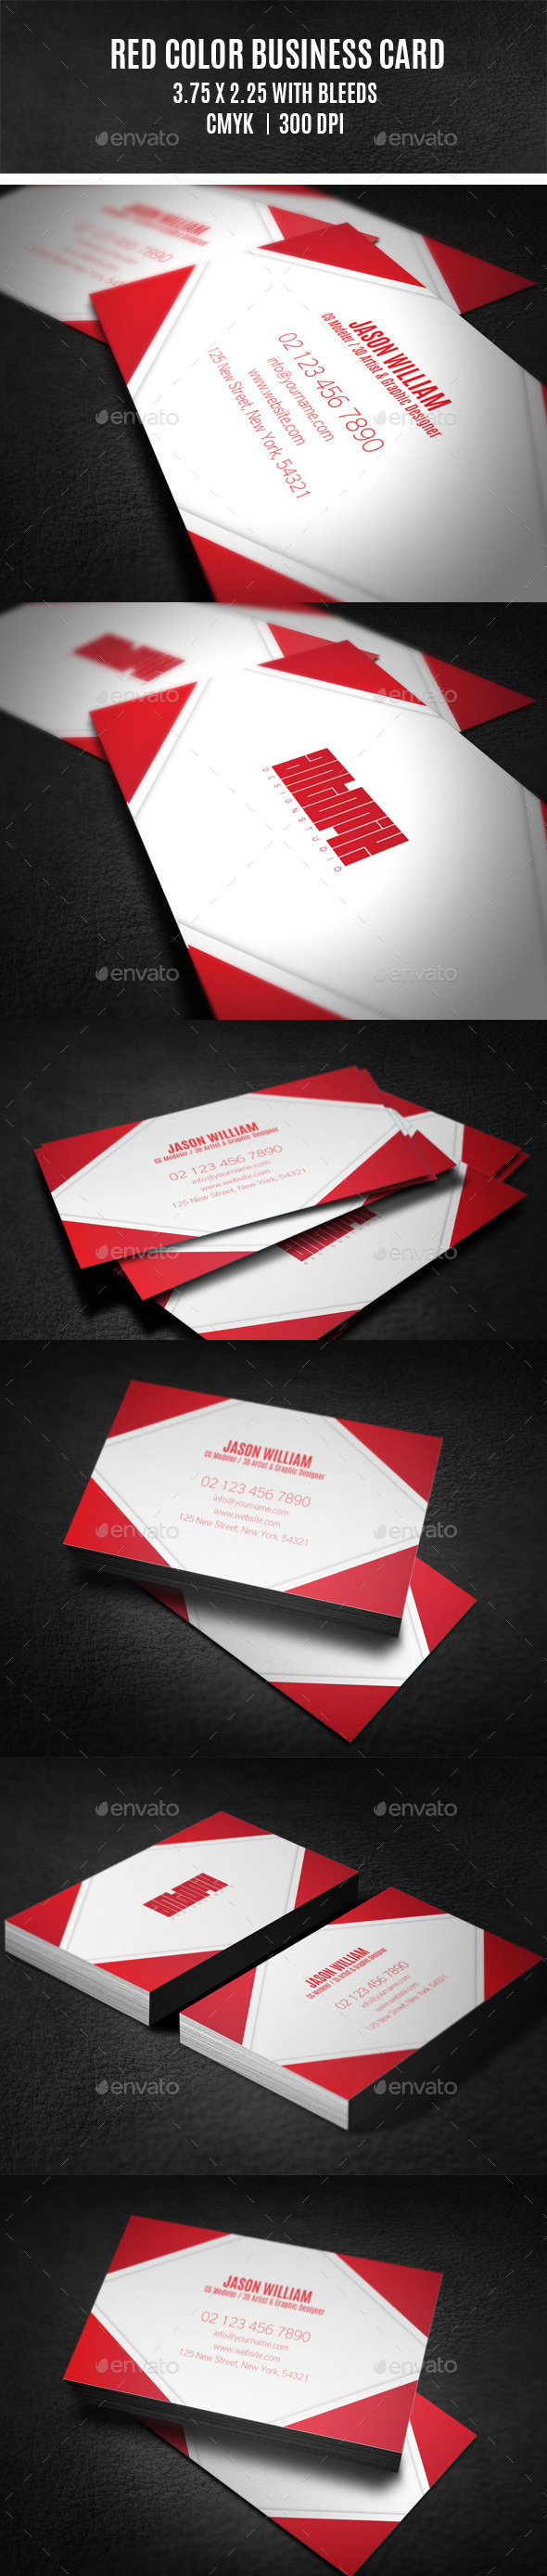 GraphicRiver Red Color Business Card 9412351